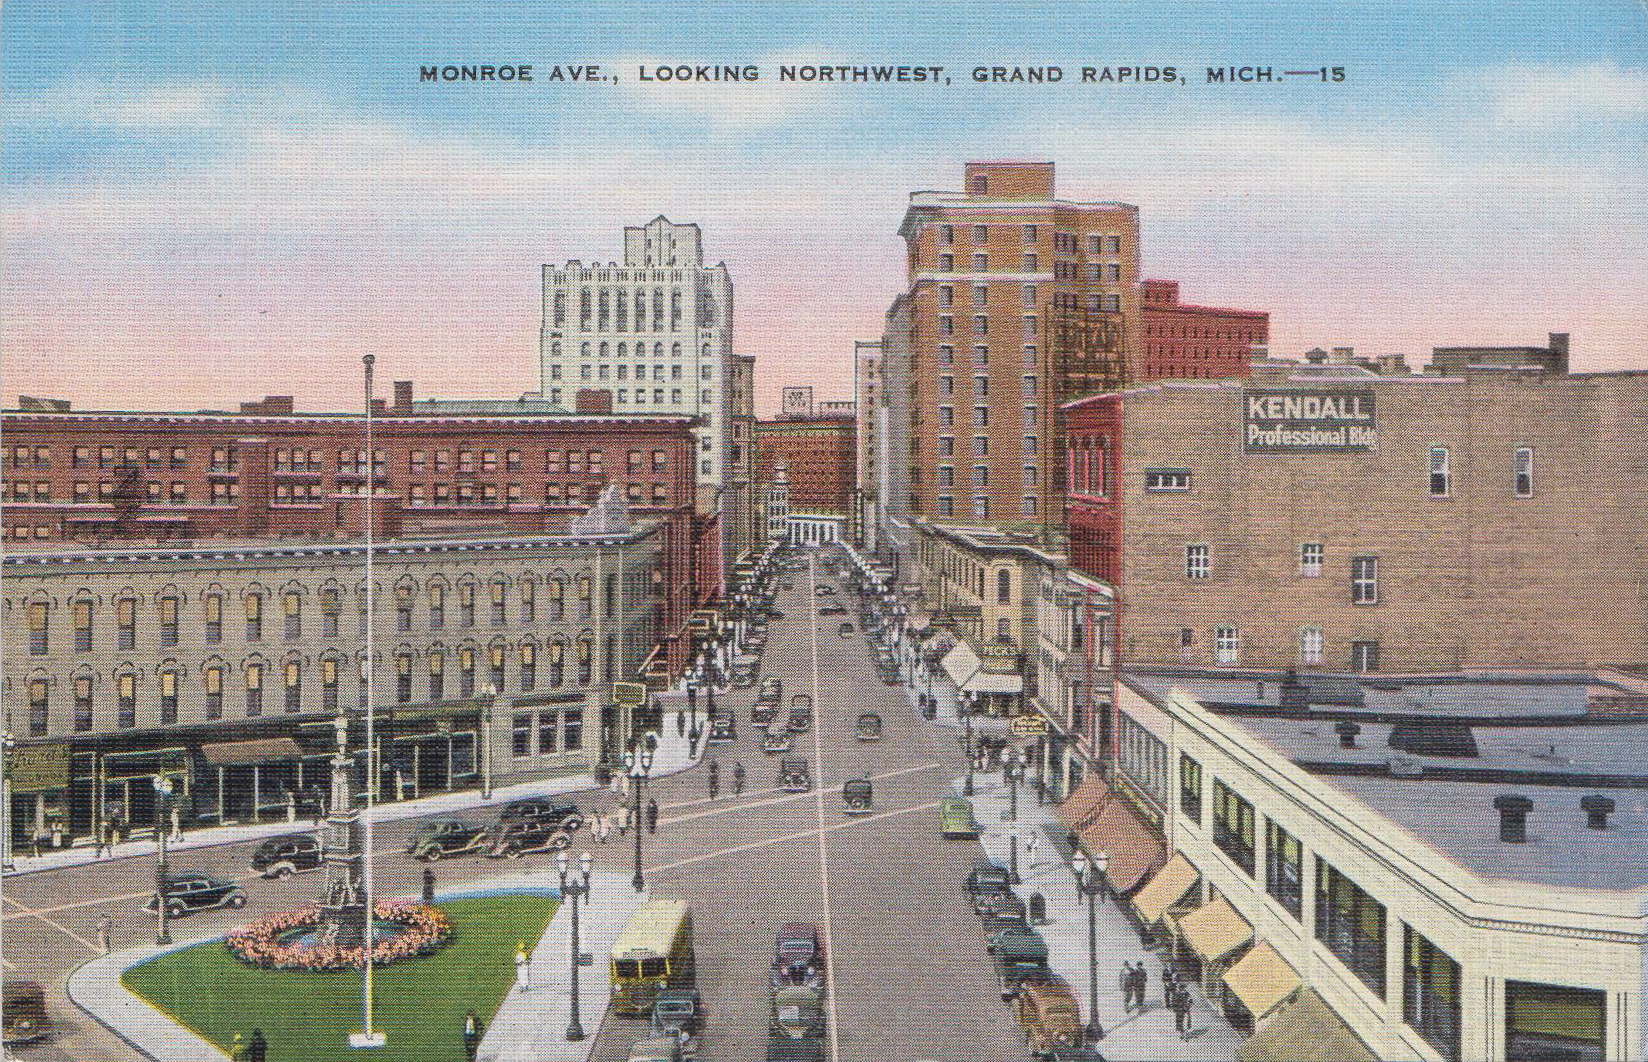 Monroe Ave. Looking Northwest, Grand Rapids, MI – circa 1940